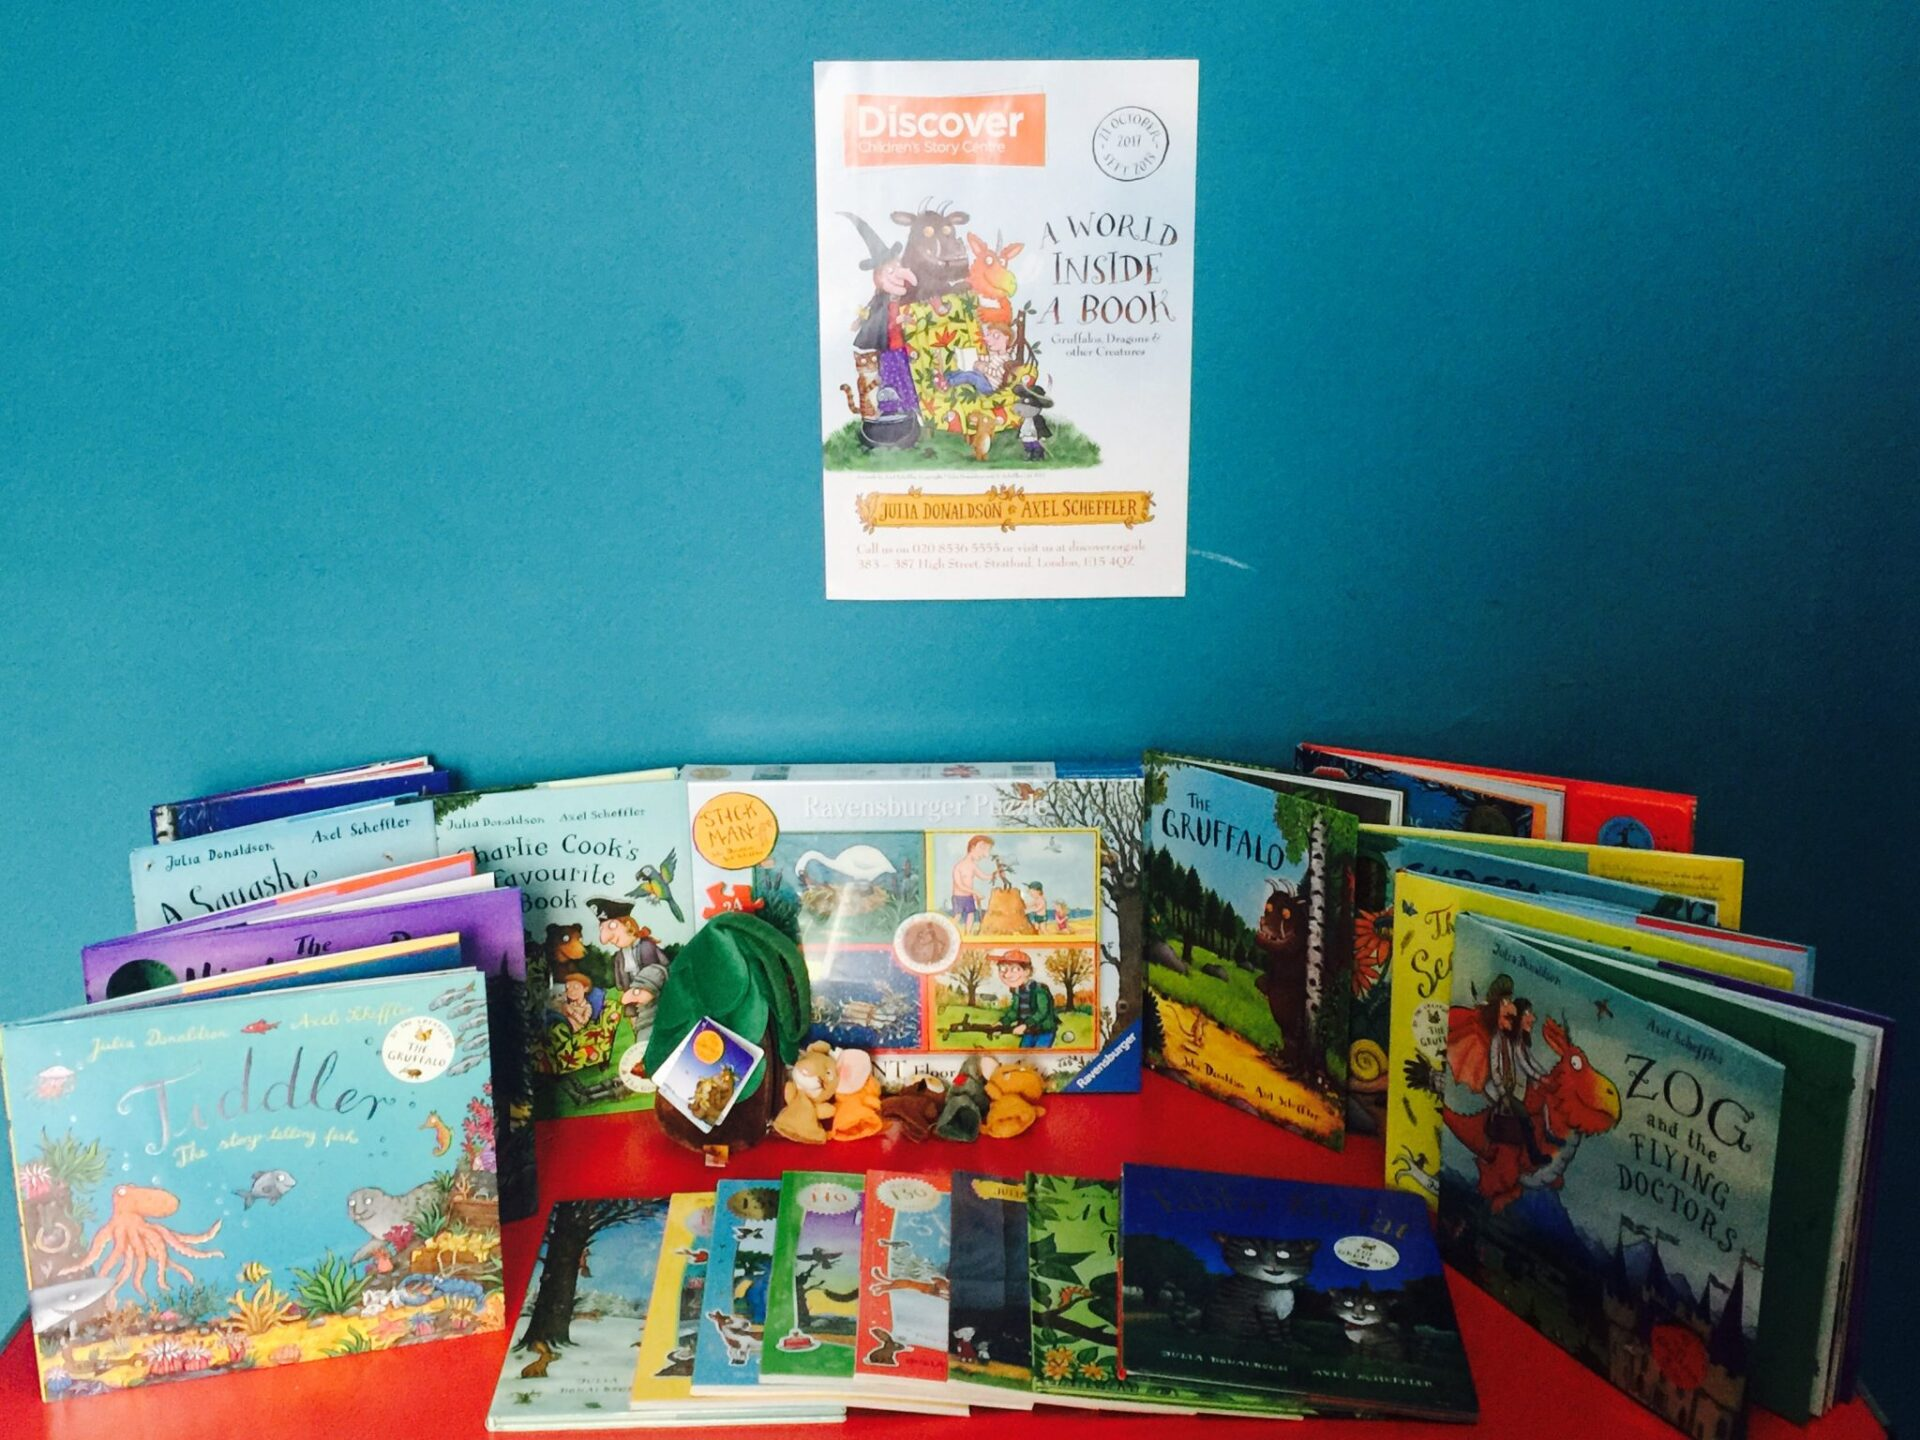 We have £250 of AMAZING goodies to give away from Julia Donaldson and Axel Scheffler to celebrate the Discover Children's Story Centre's amazing exhibition...including tickets for the event in October 21st, which runs for a whole year! Com visit the blog to find out all about the event!